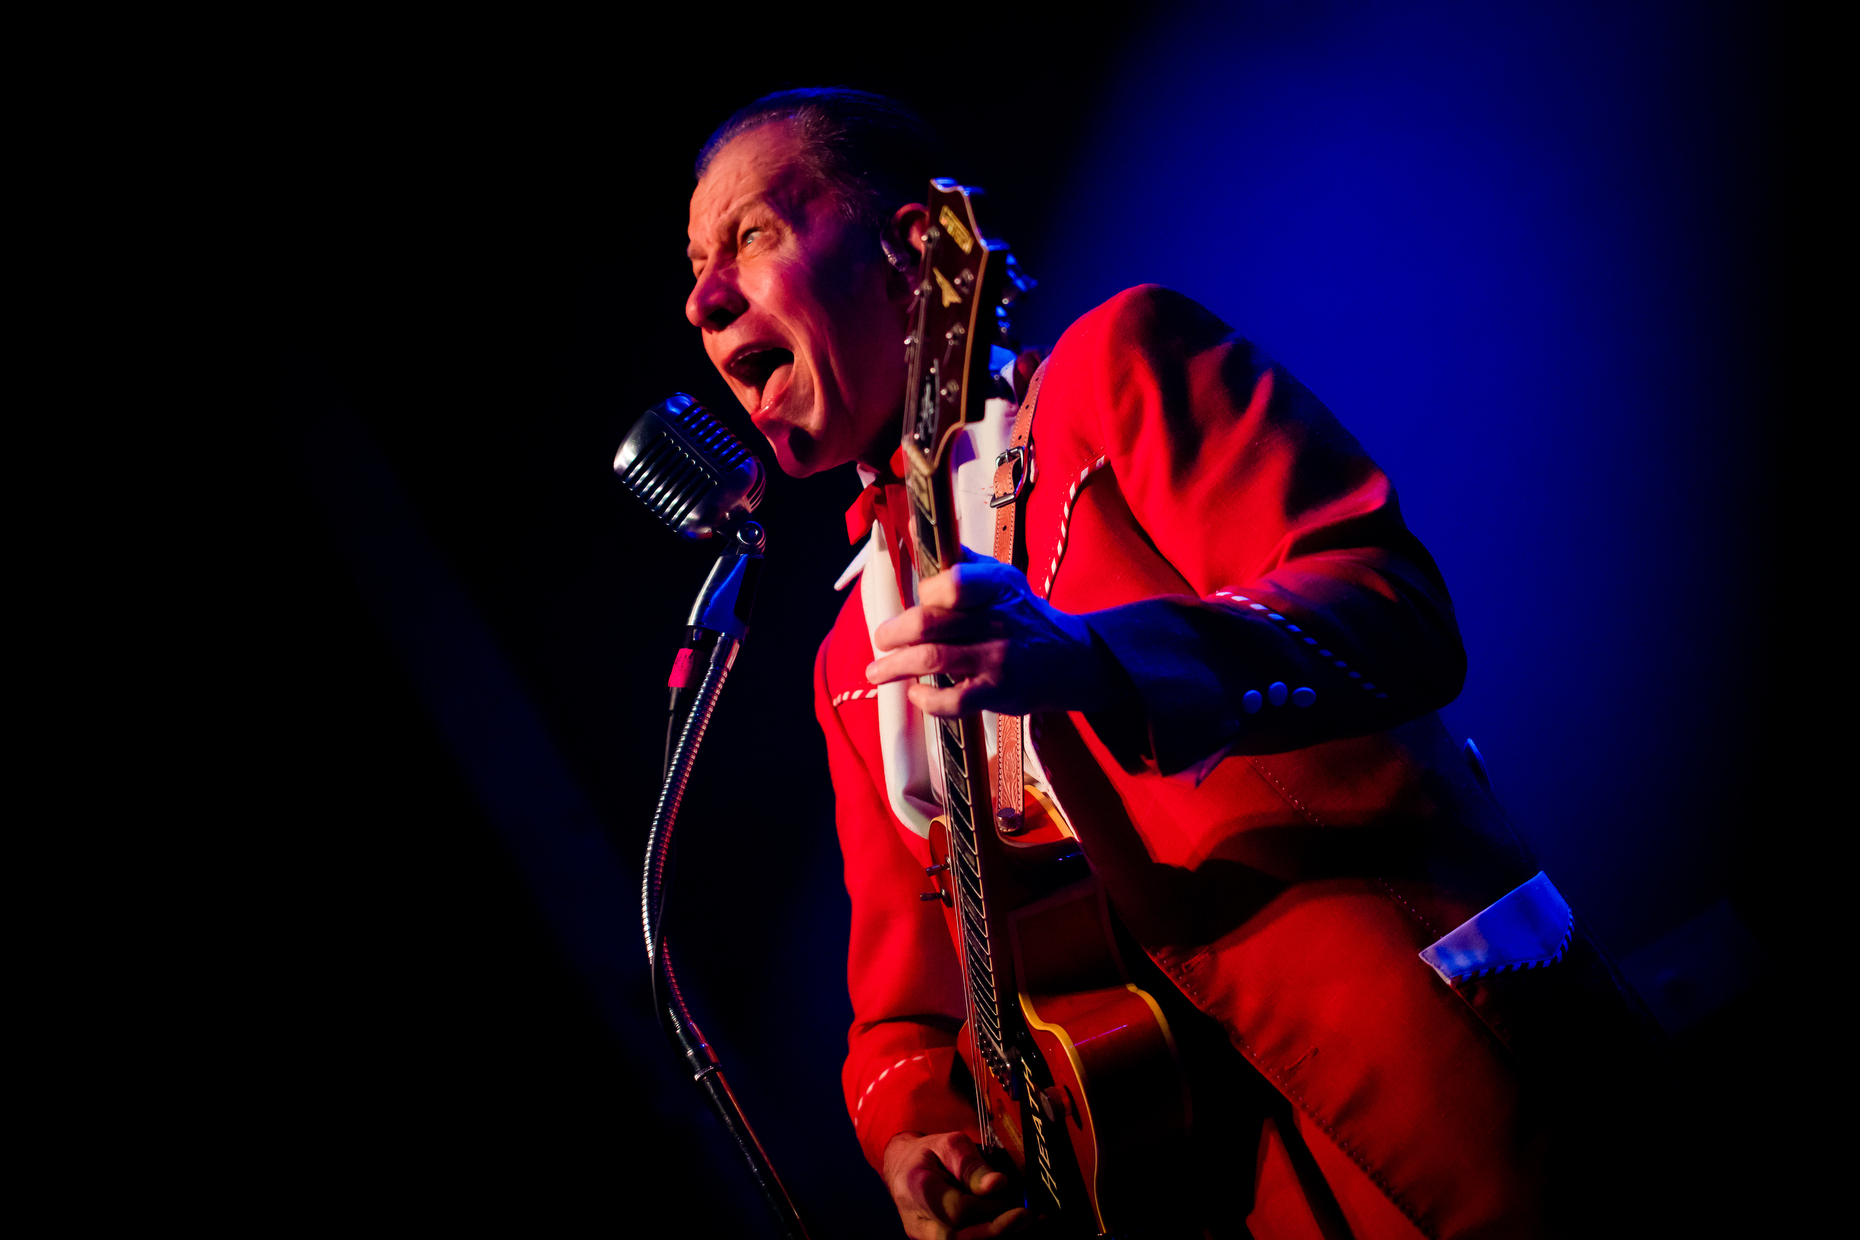 REVERENDHORTONHEAT0018.JPG